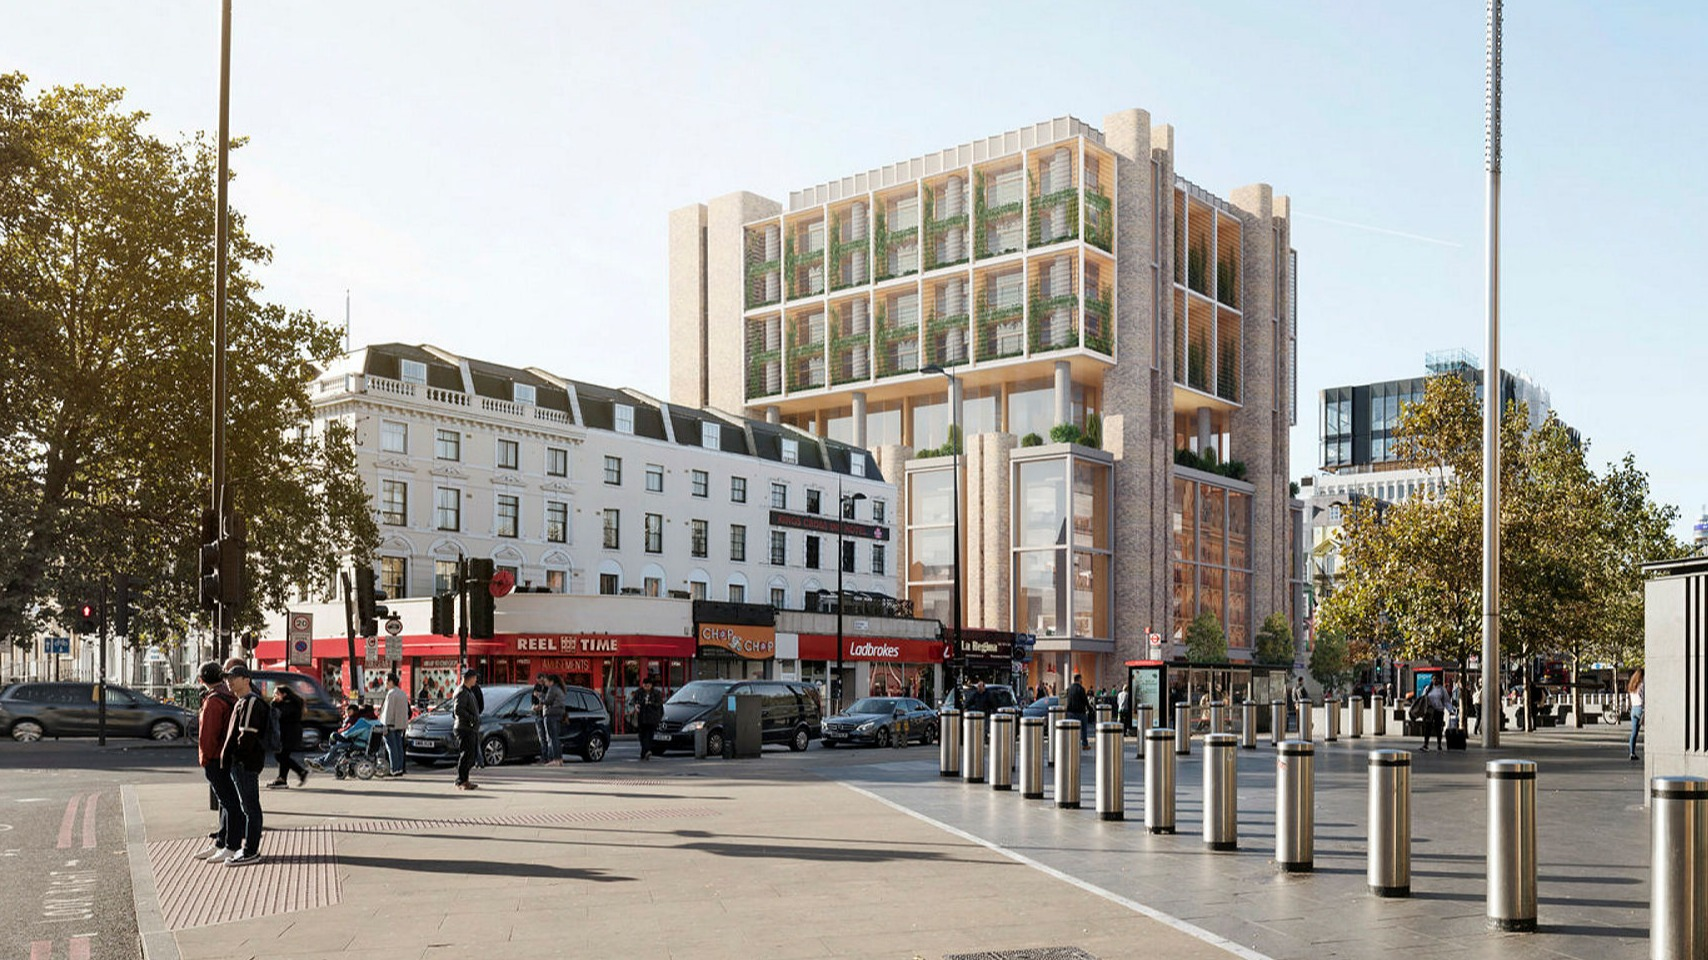 Merck to Build New Headquarters in King's Cross